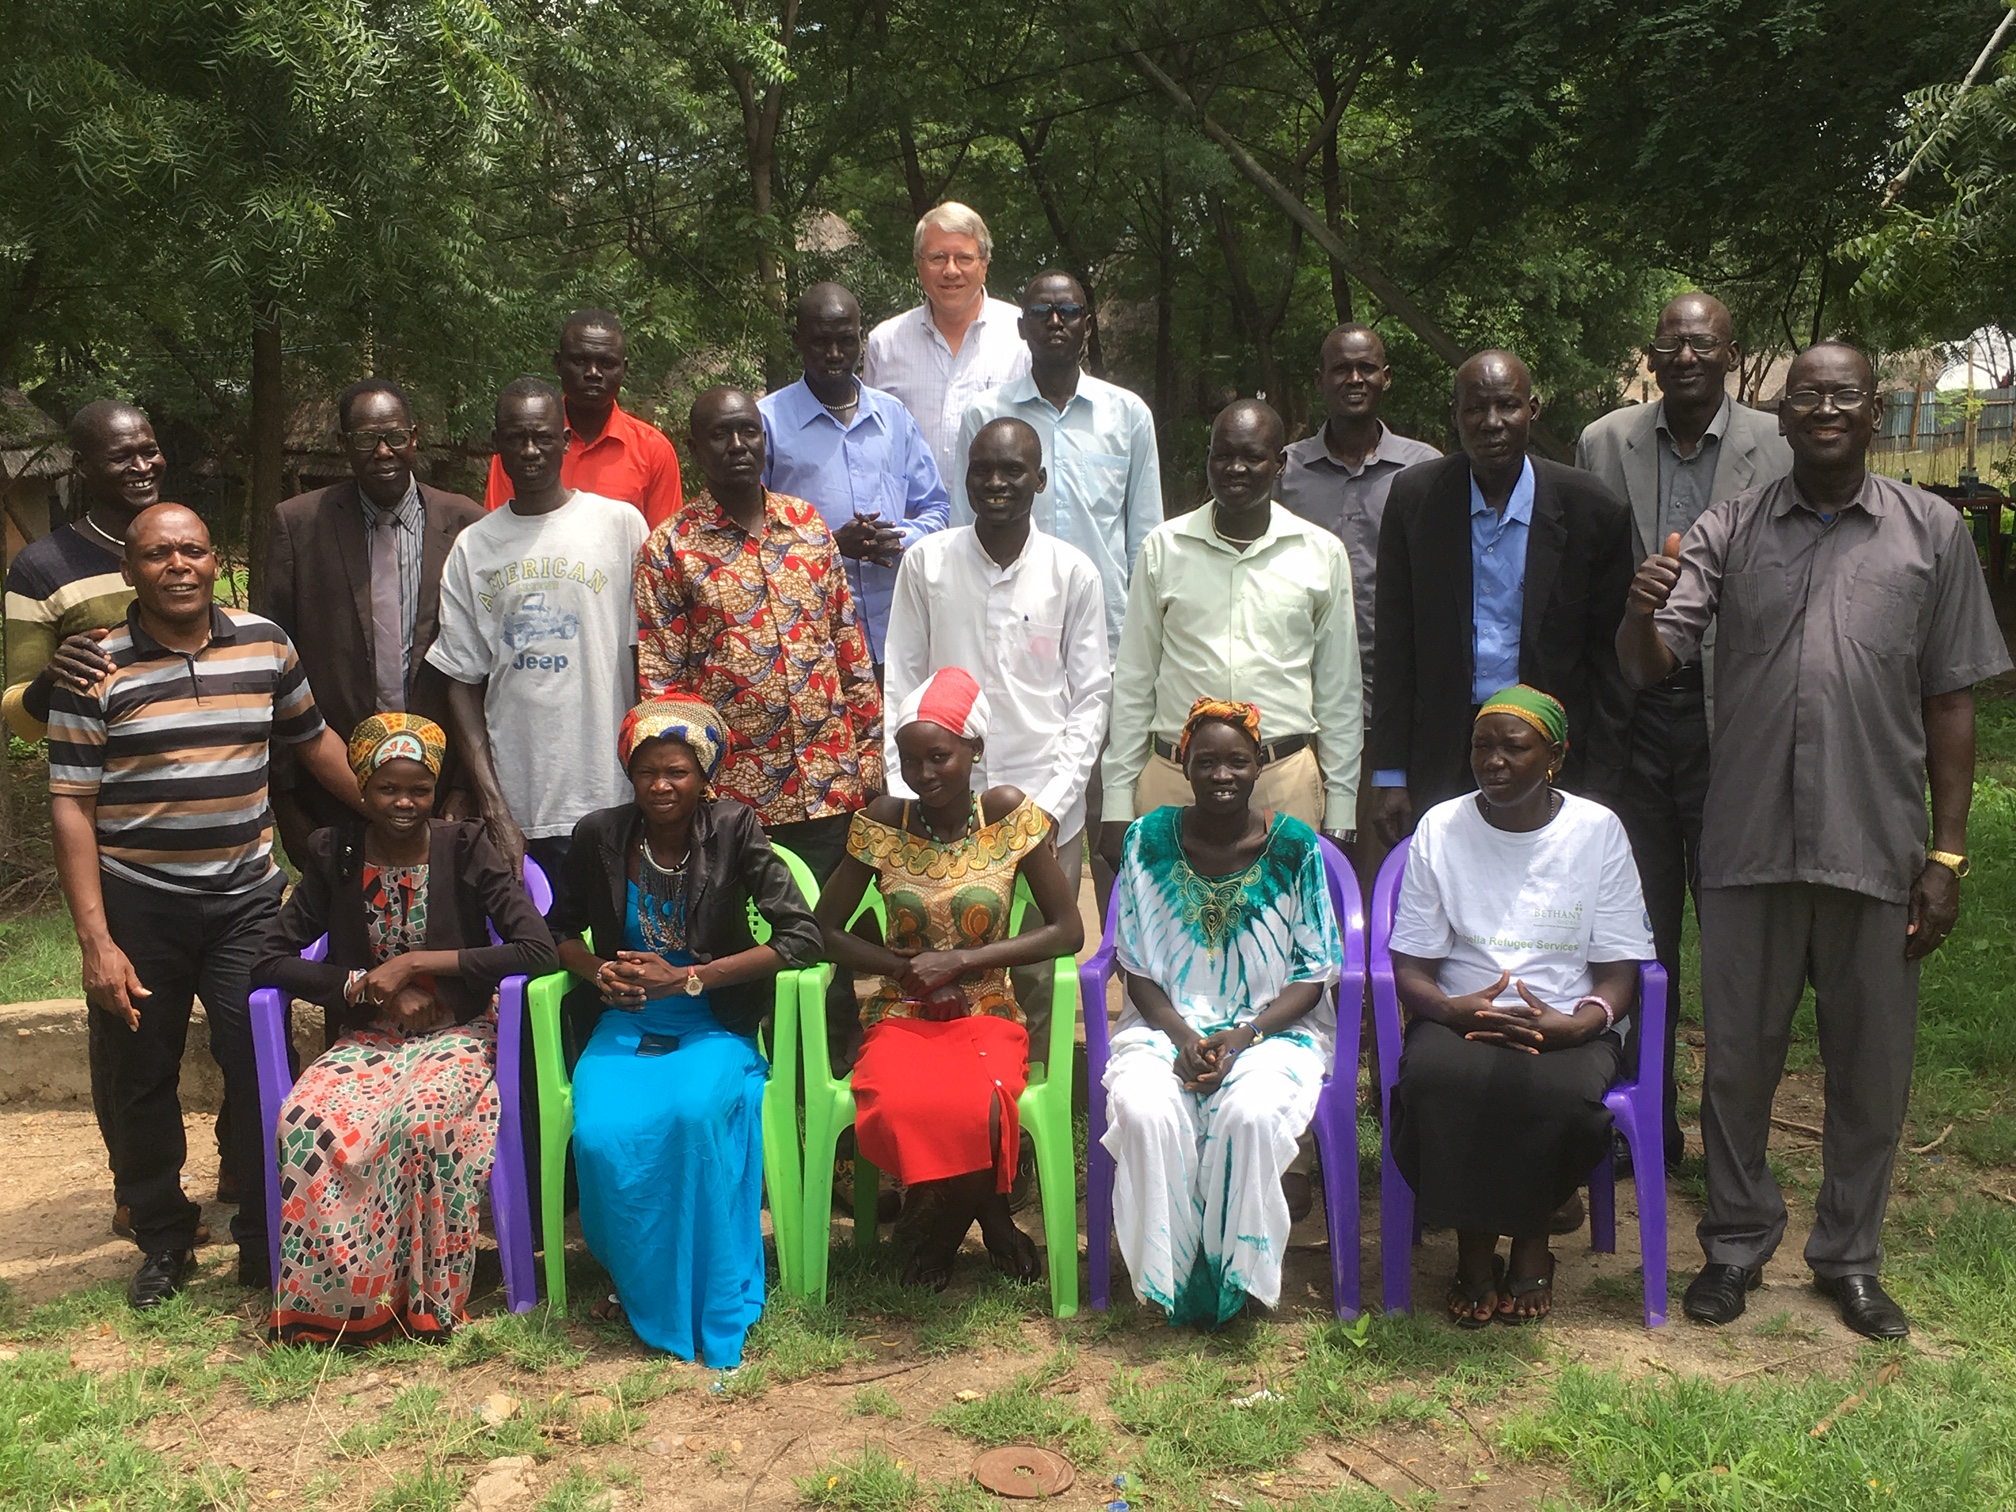 Advanced trainees at the completion of training: 5 women, 10 men, together with Sudanese-Americans and Kenyan, Sudanese and American facilitators. Great group!